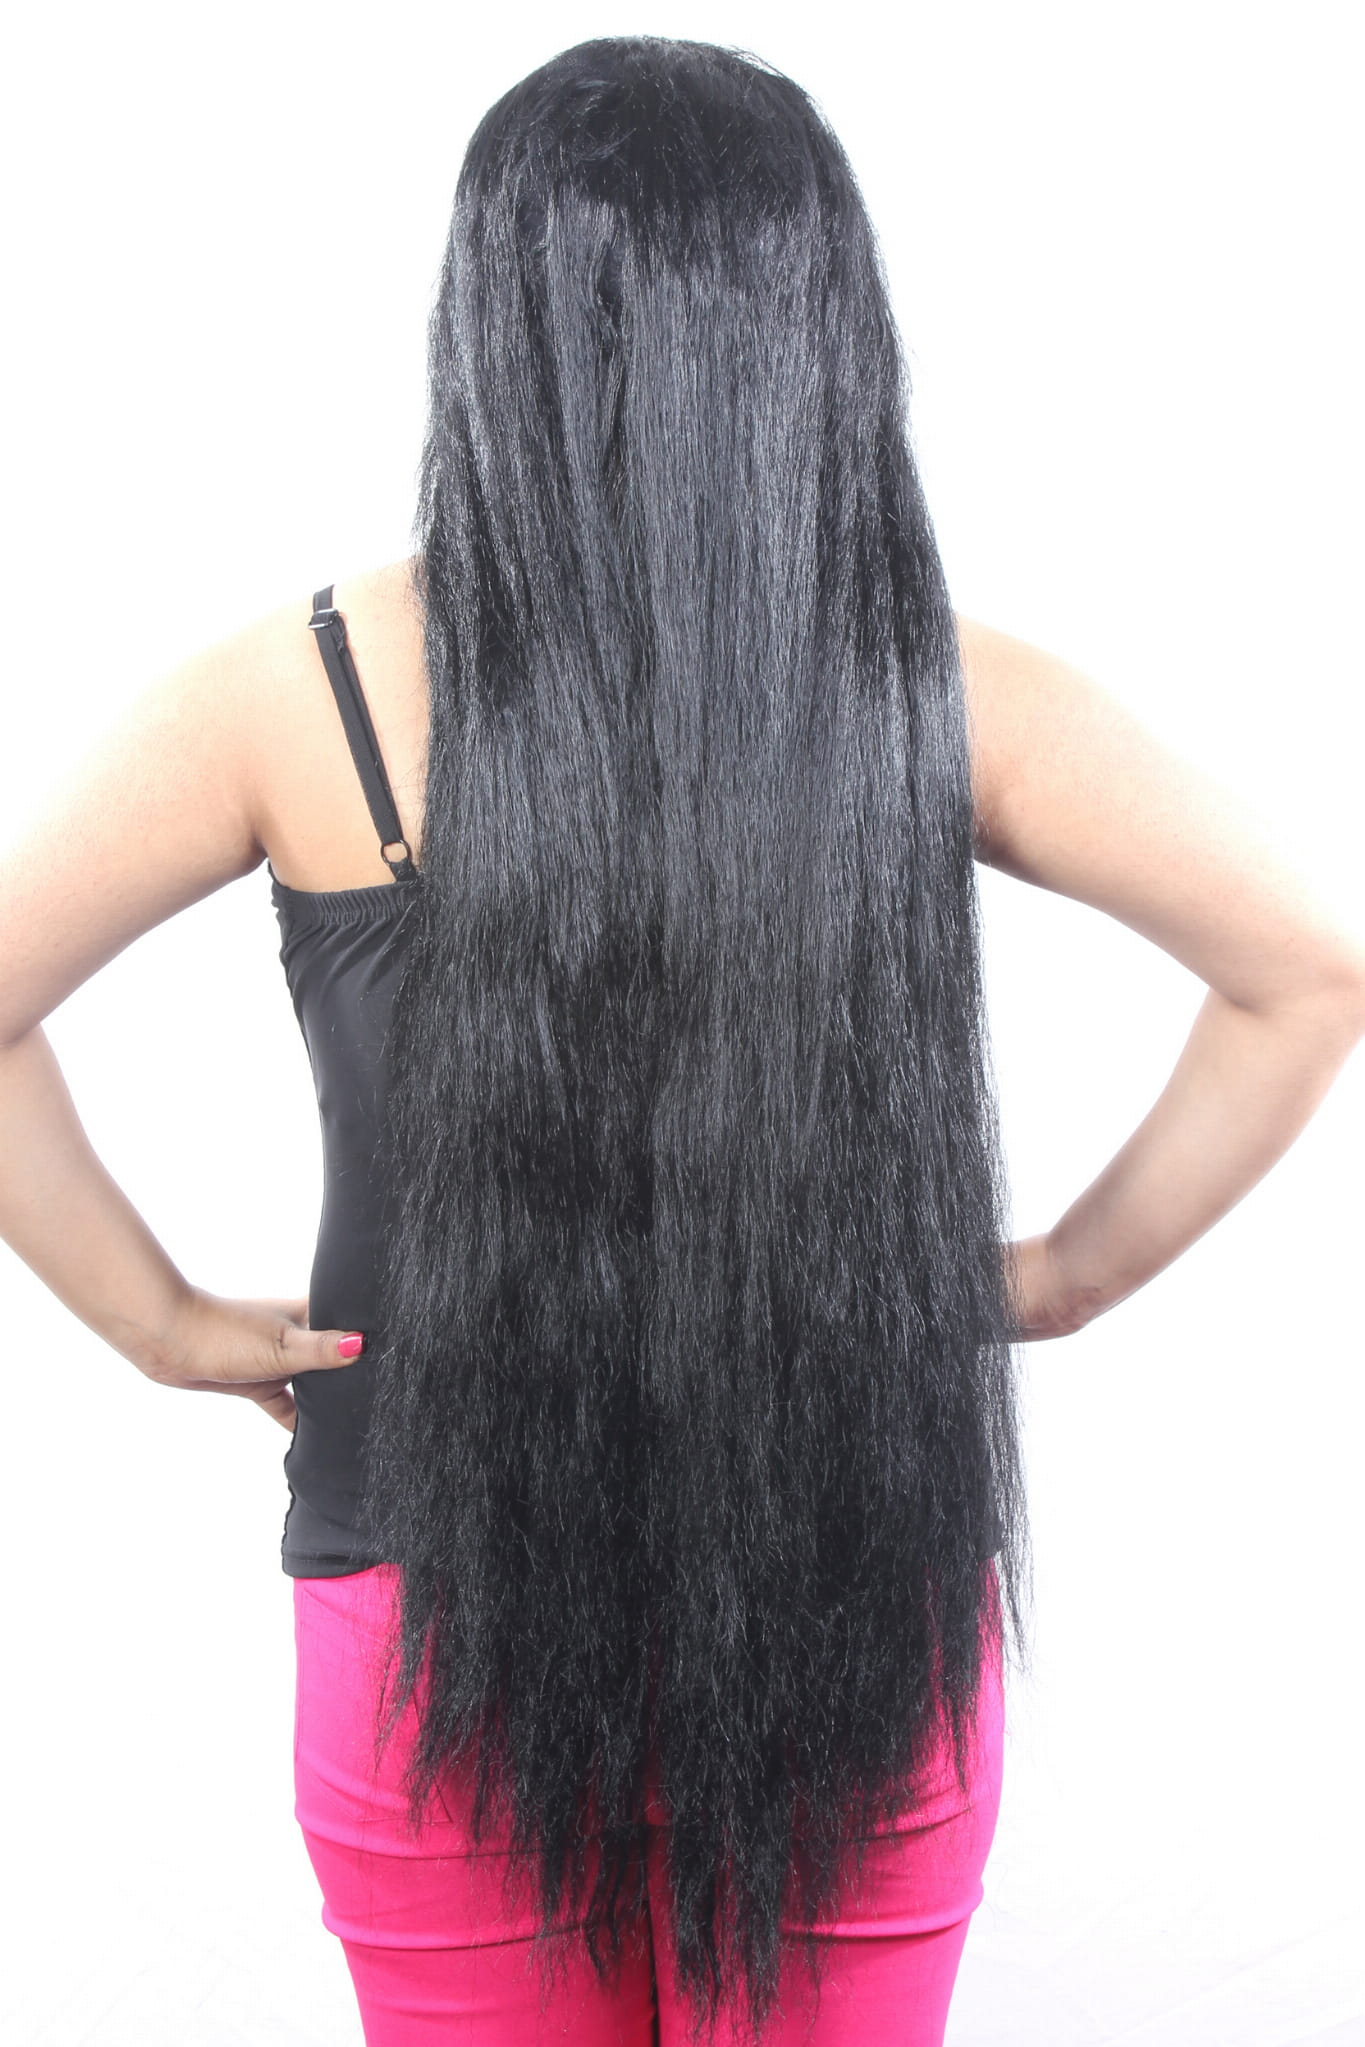 ritzkart 31 inch indian hi long women black hair wig straight long indian  style.